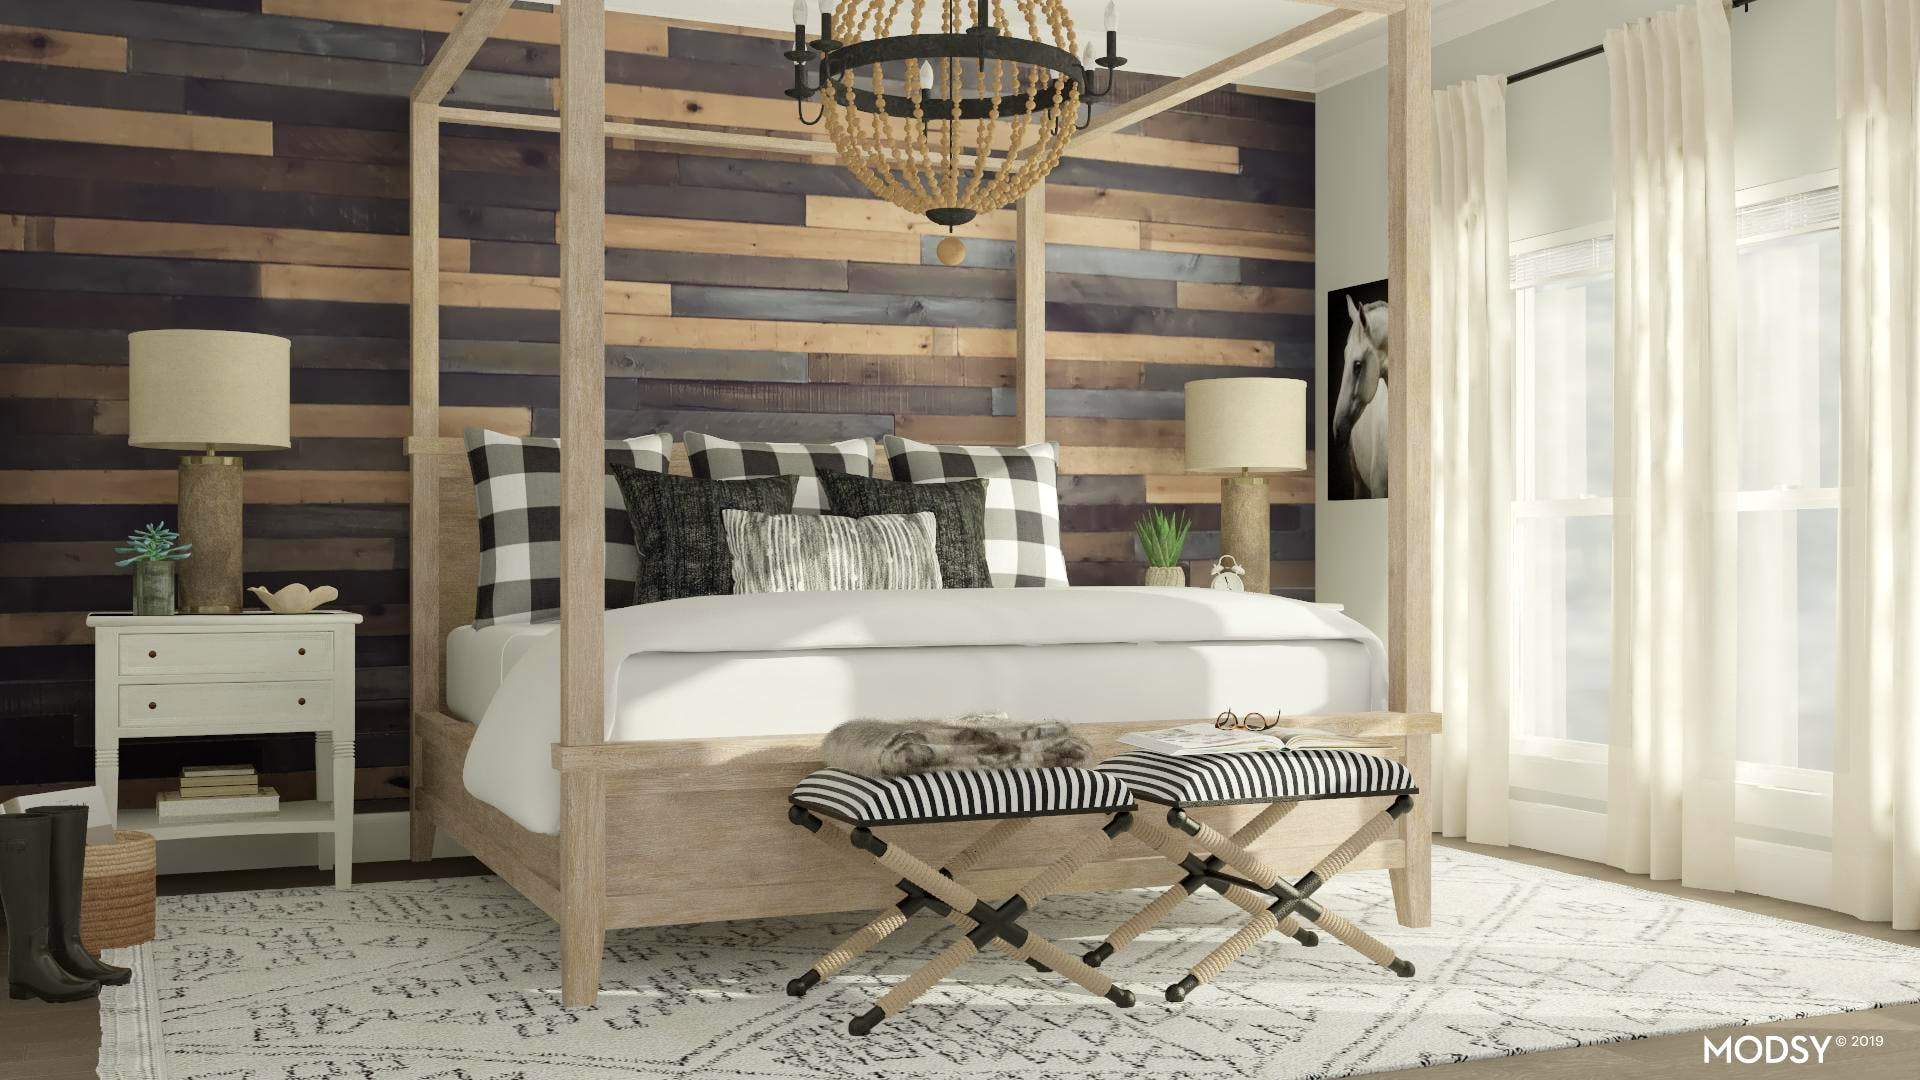 Rustic Bedroom: Black & White Edition